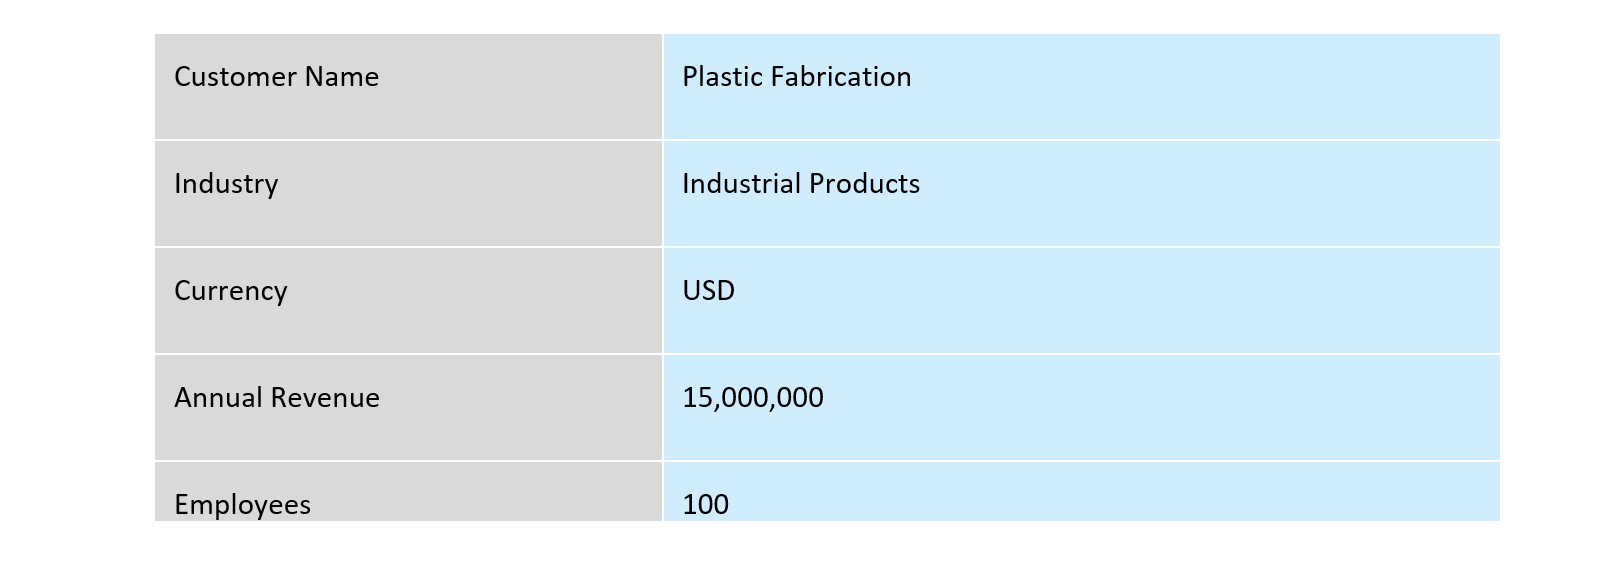 Benefits of implementing ERP for a plastic manufacturing company